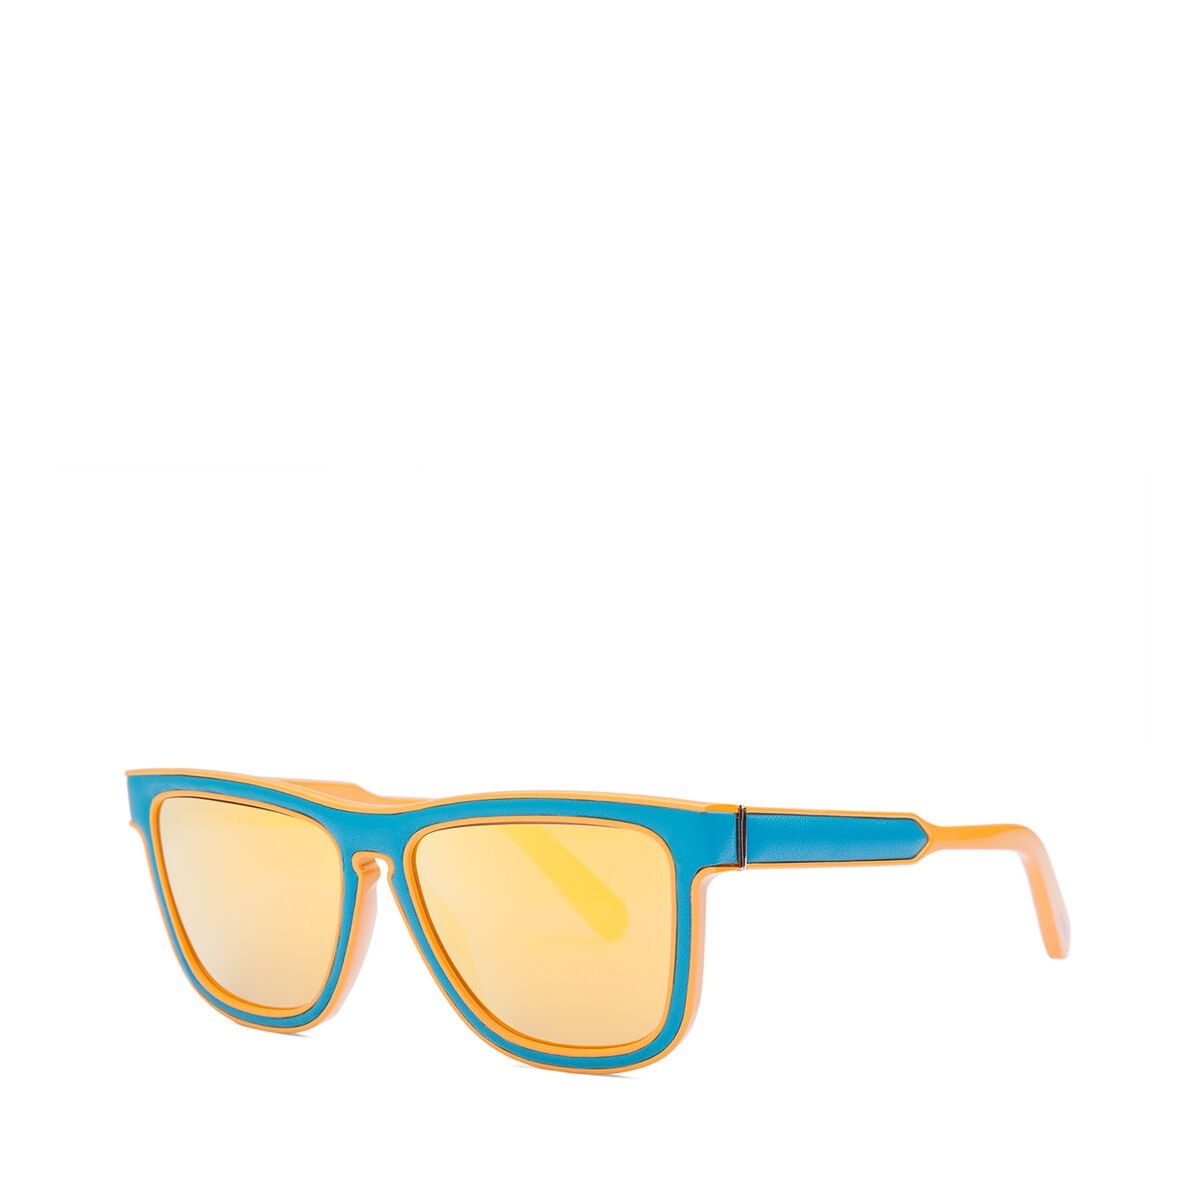 LOEWE Square Padded Sunglasses Turquoise/Mirror Yellow all